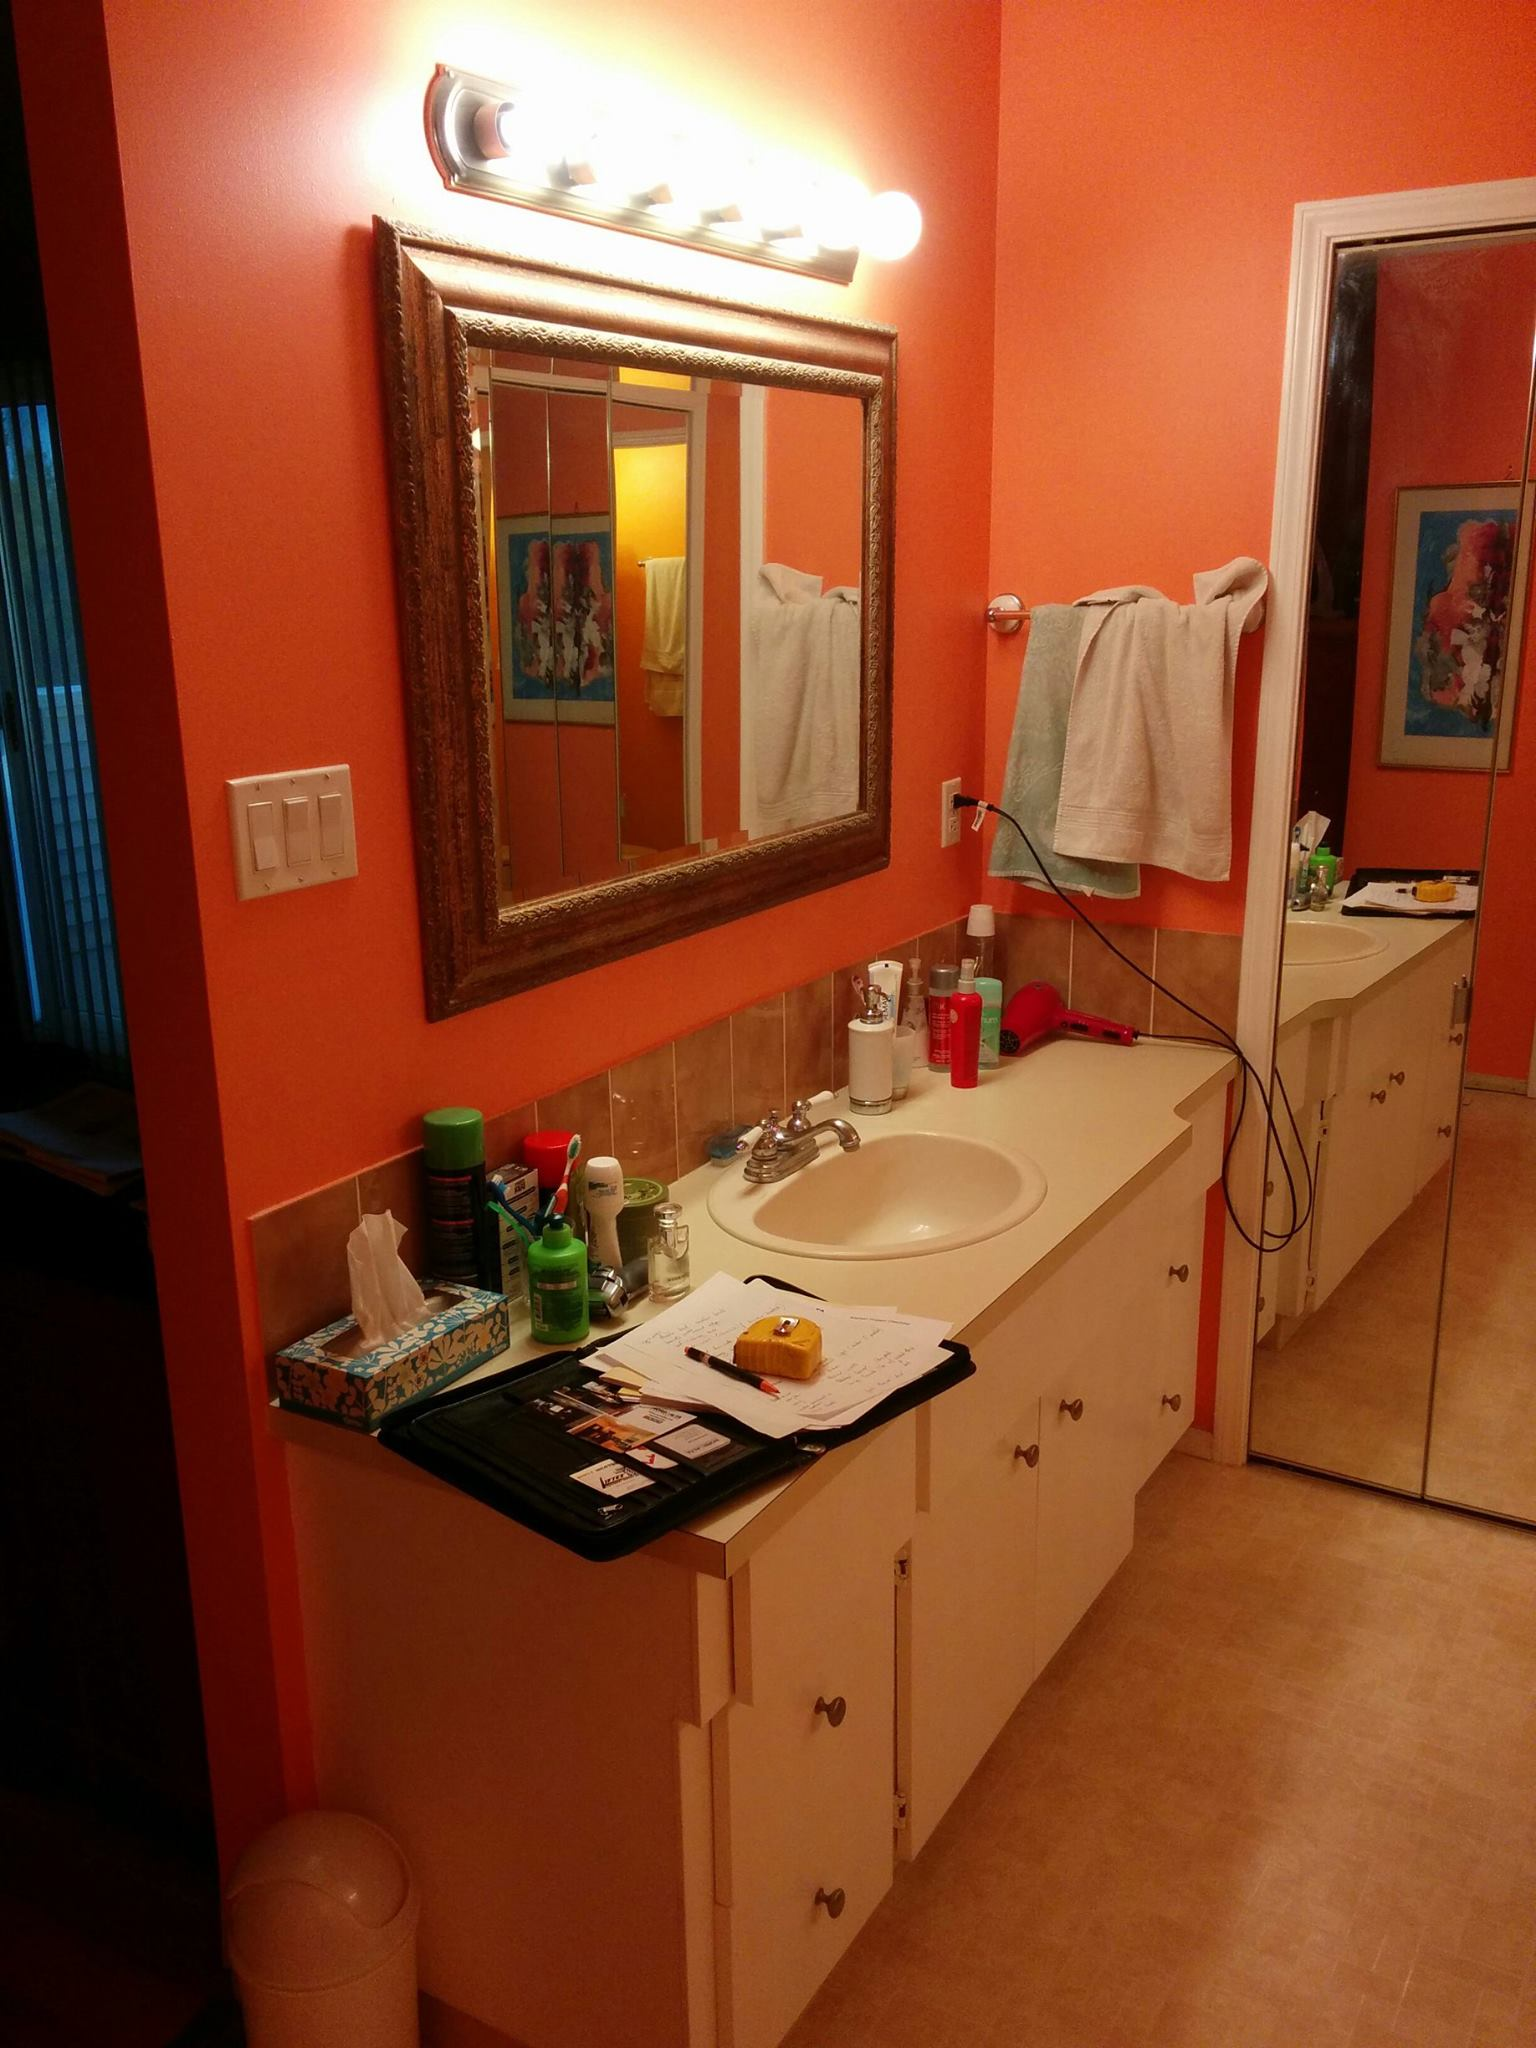 This is a before picture of the bathroom. As you can see, there is a drastic change between the old and new.